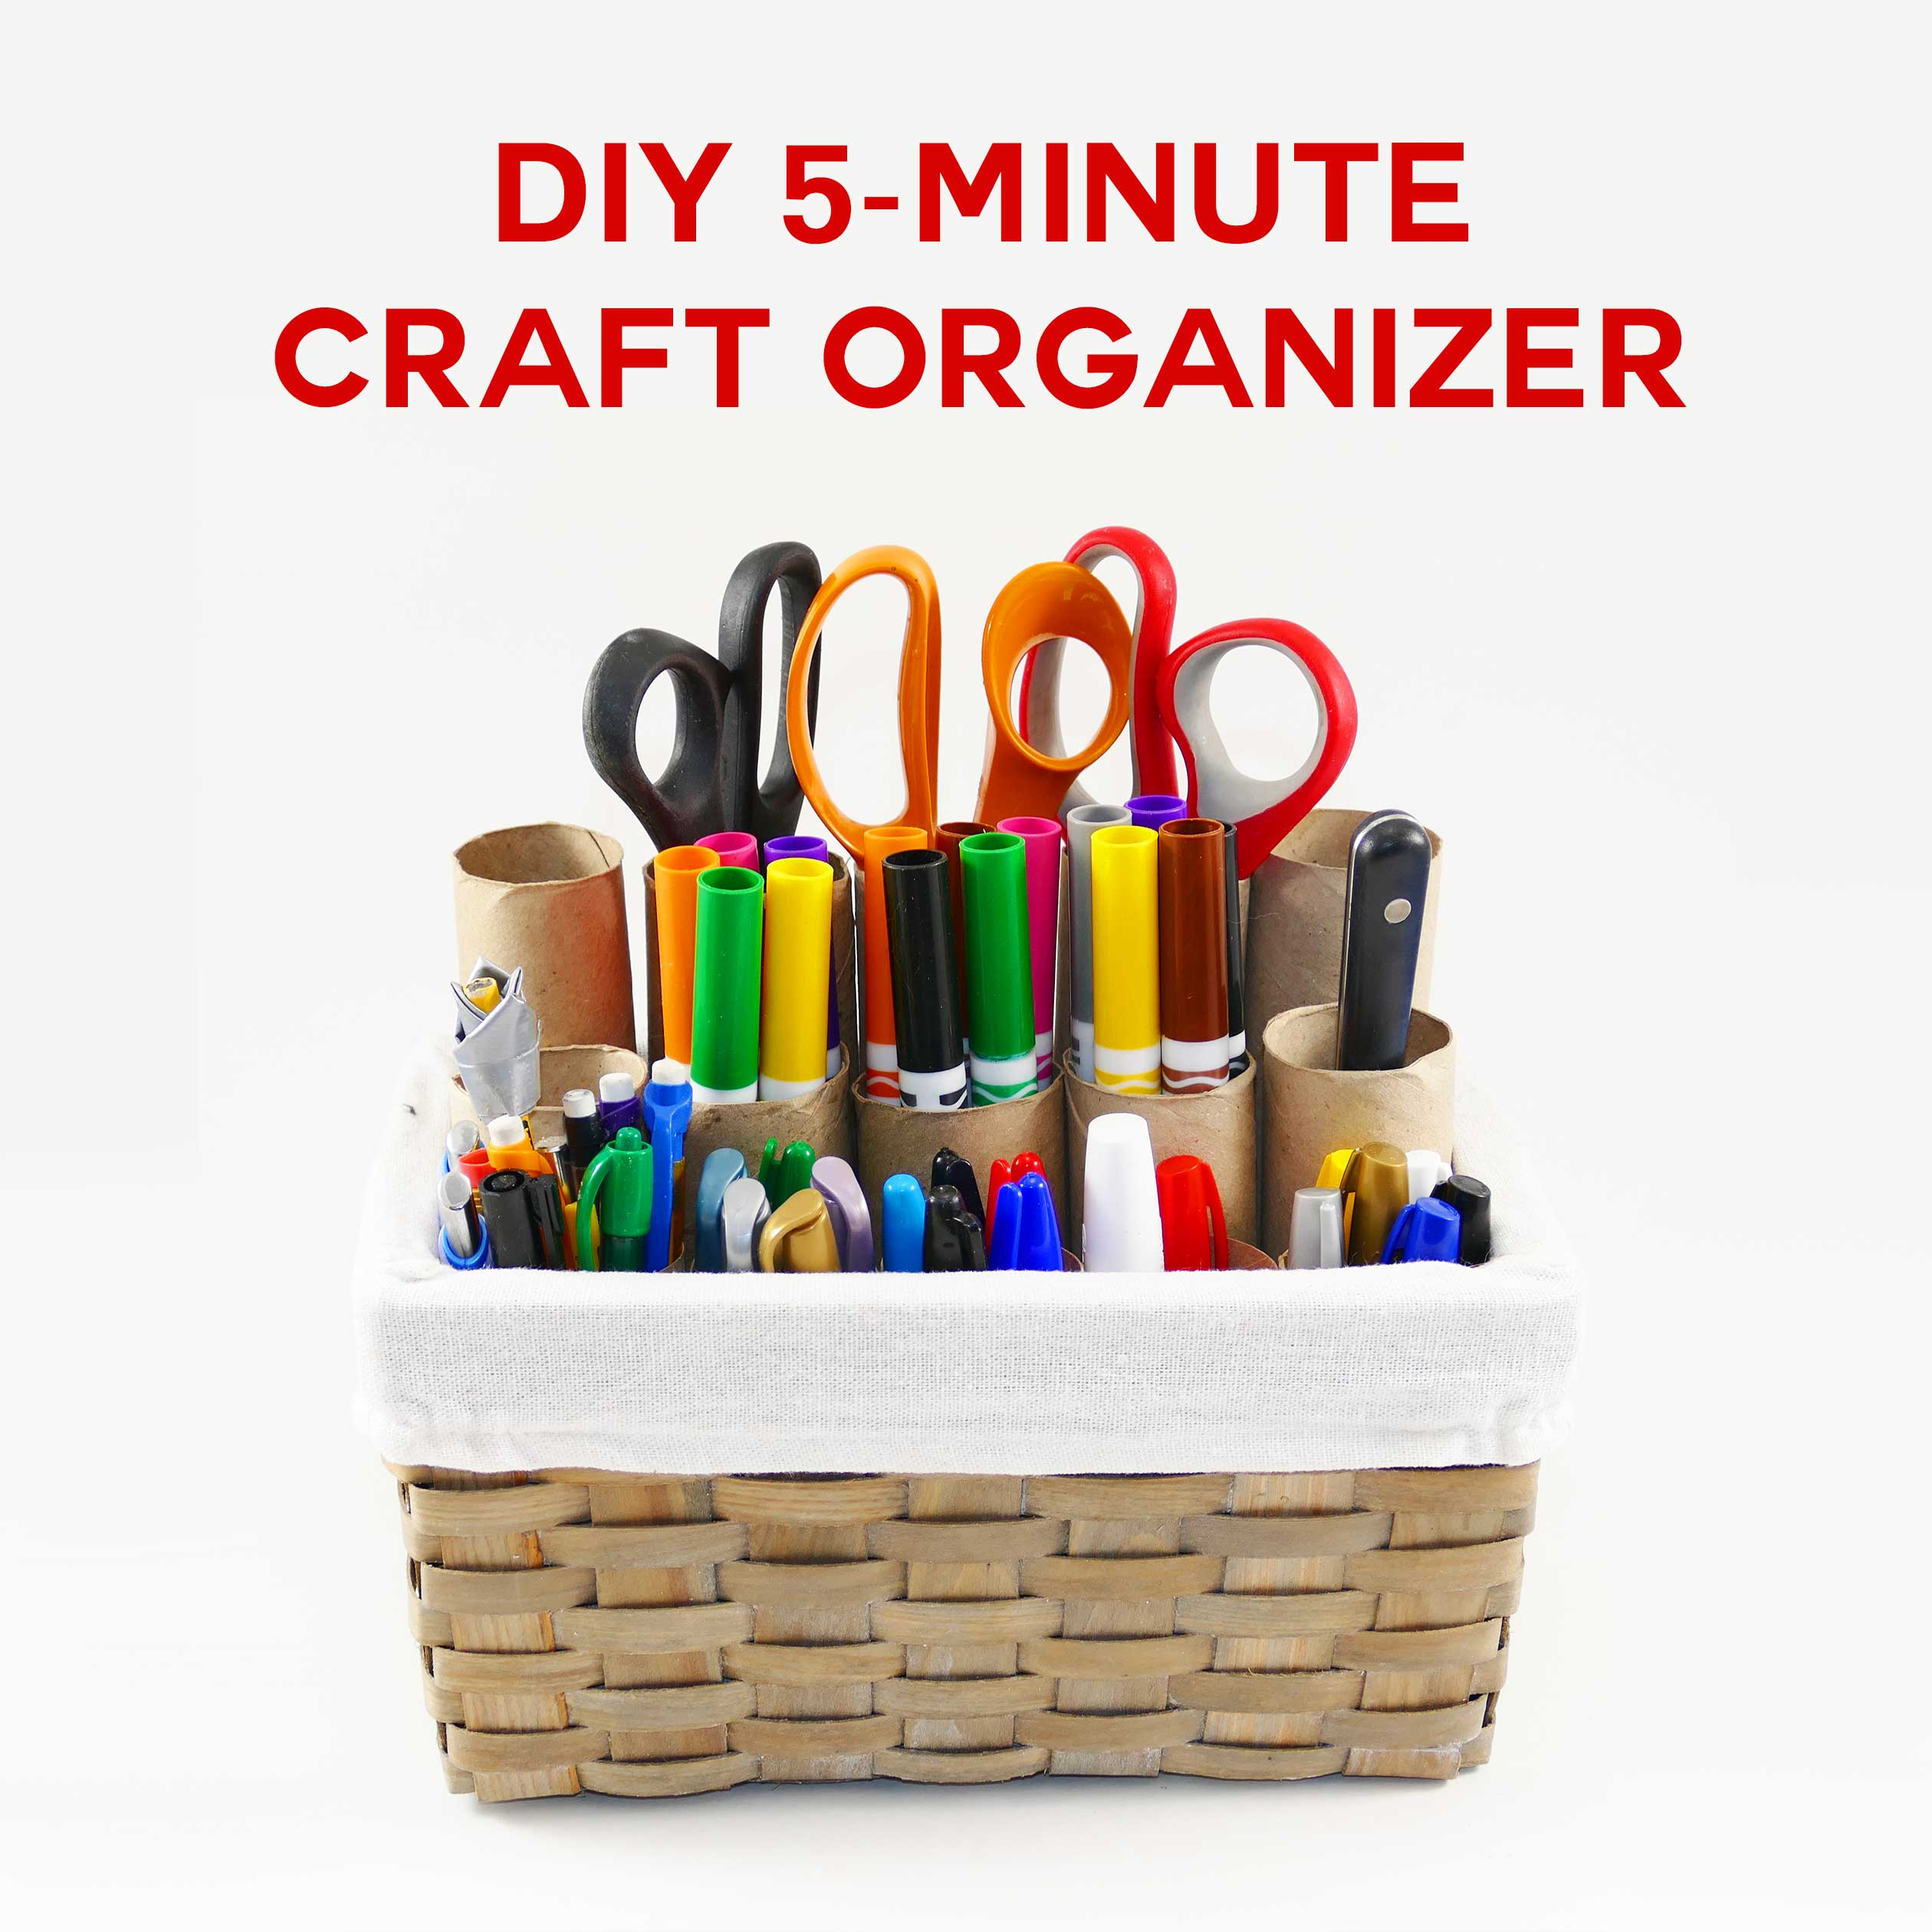 Diy Craft Organizer In 5 Minutes Jennifer Maker